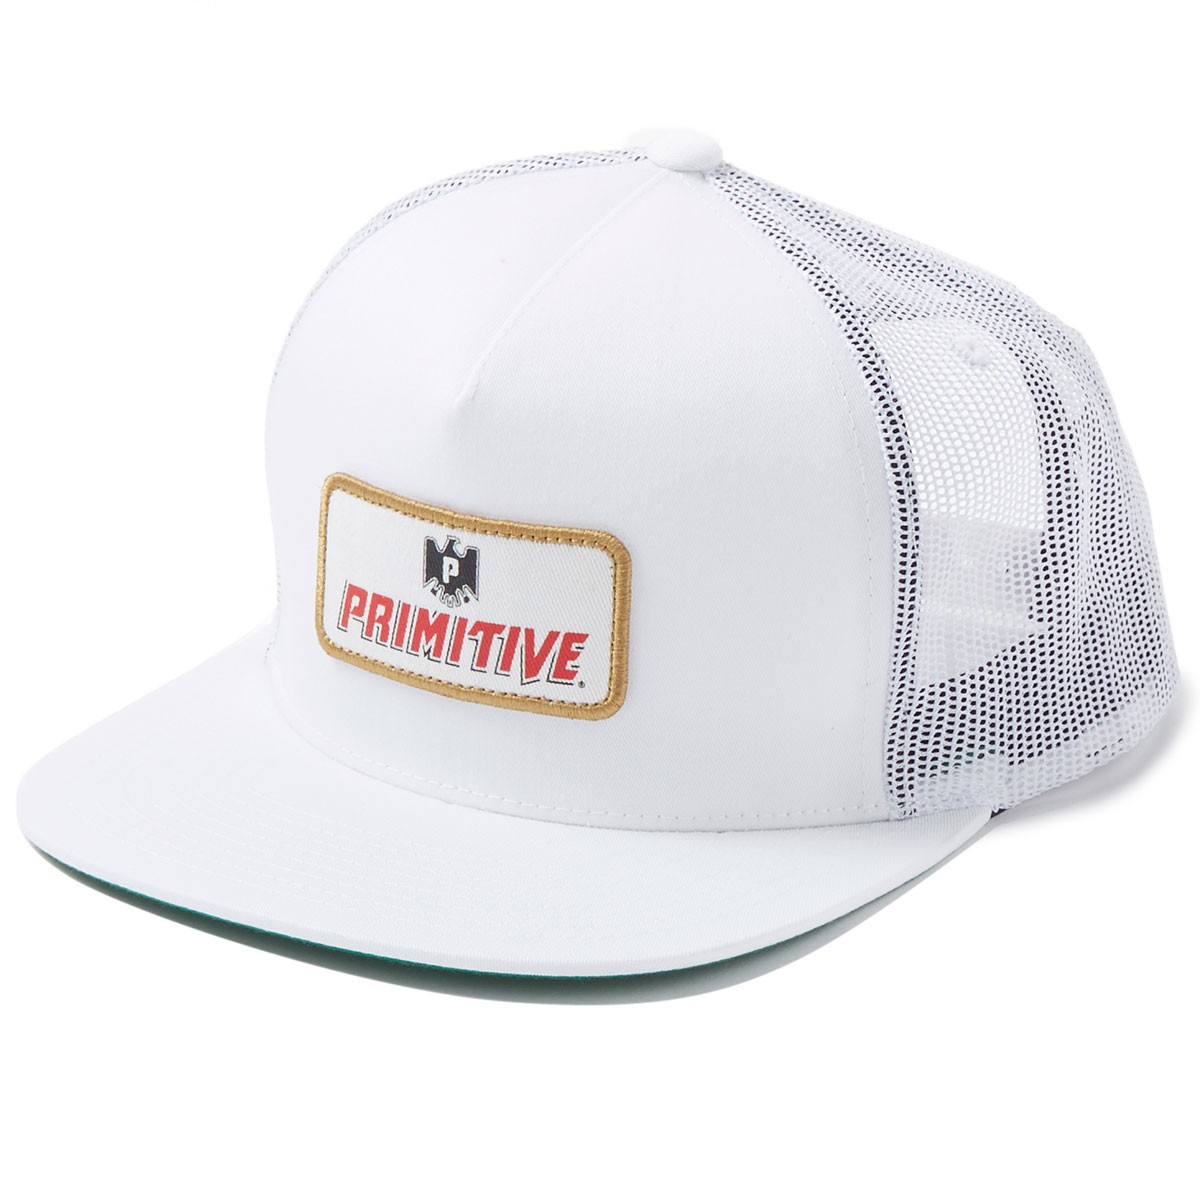 Primitive Cerveza Trucker Hat - White